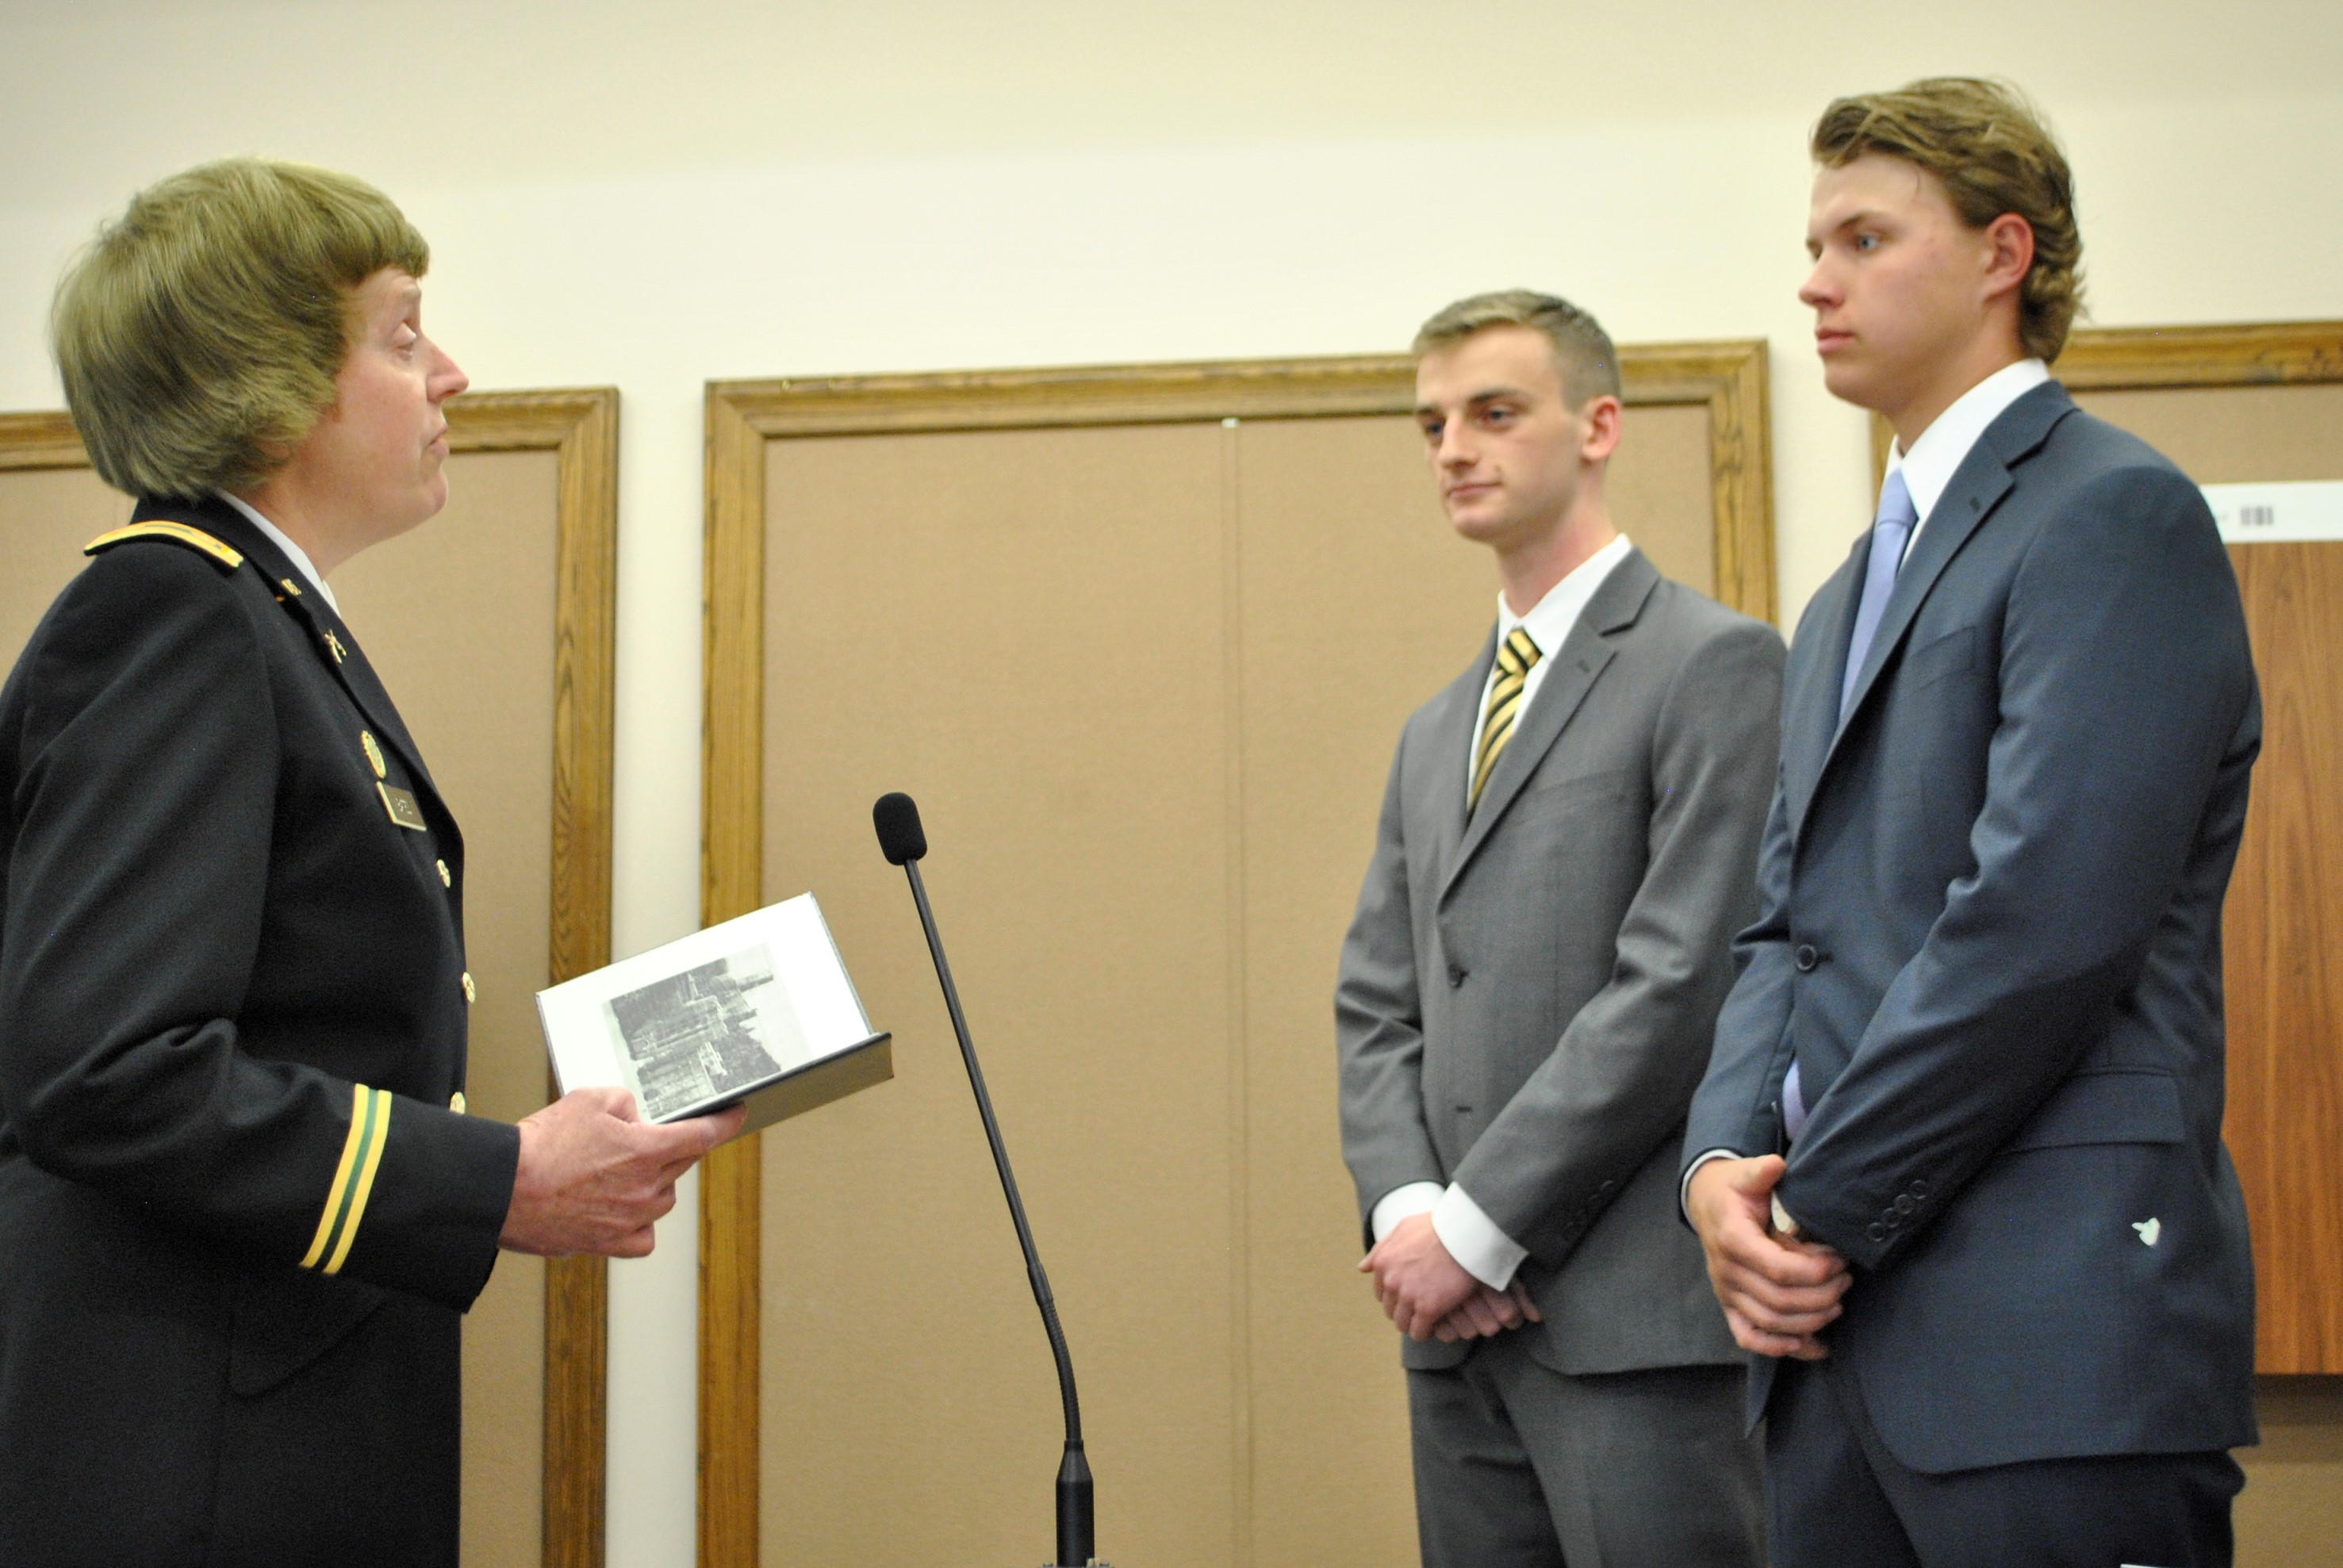 Two Danbury High School students appointed West Point cadets